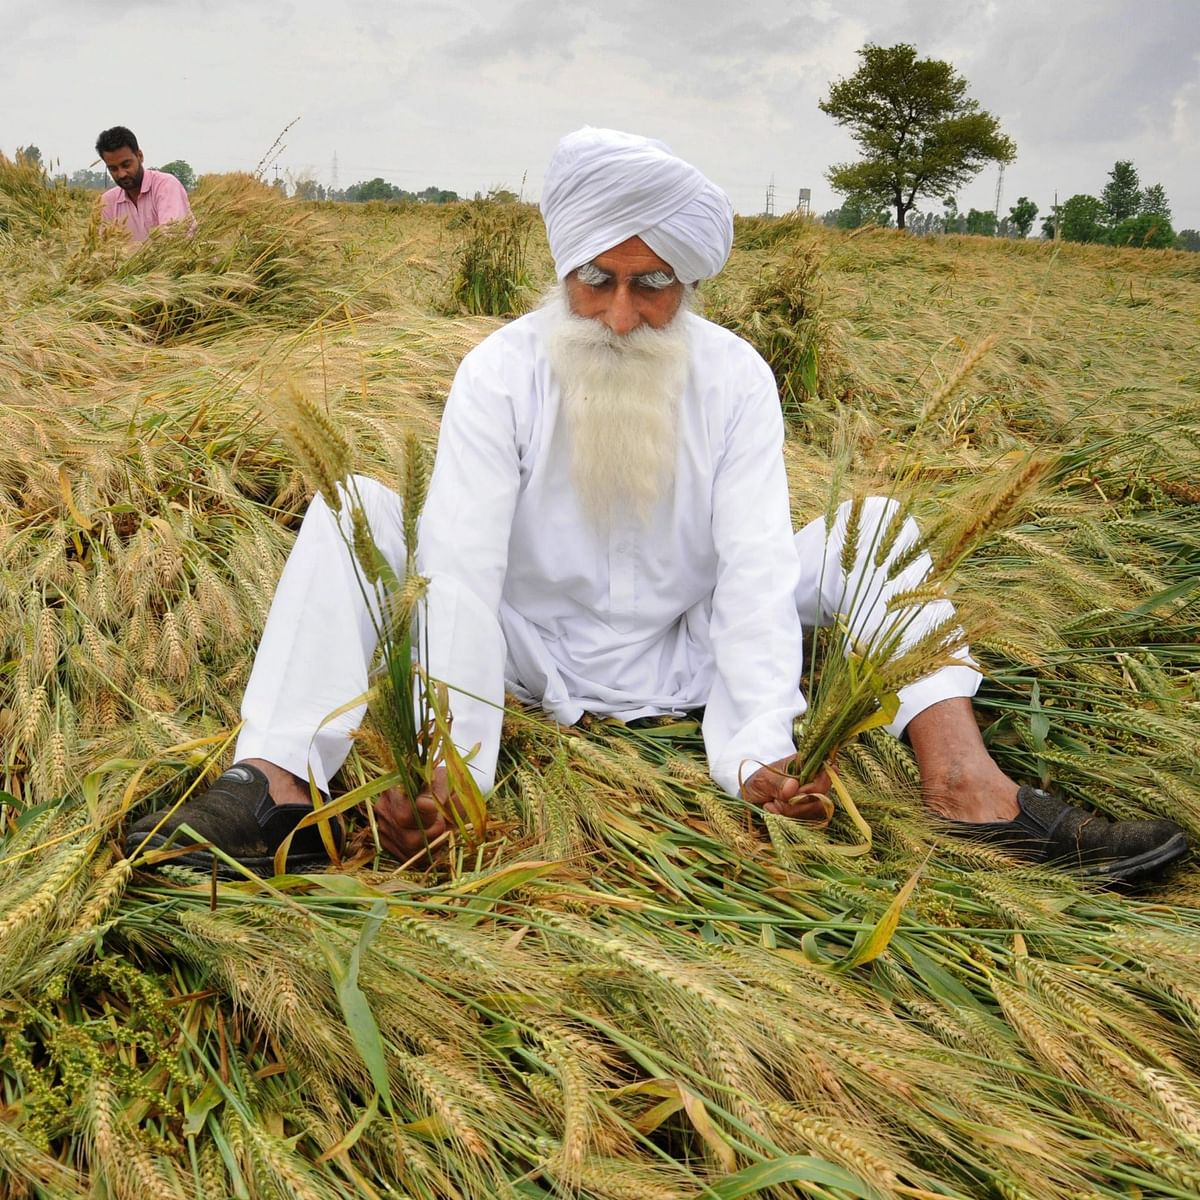 A farmer shows his wheat crop flattened and damaged by strong winds and rains, on the outskirts of Amritsar (IANS)